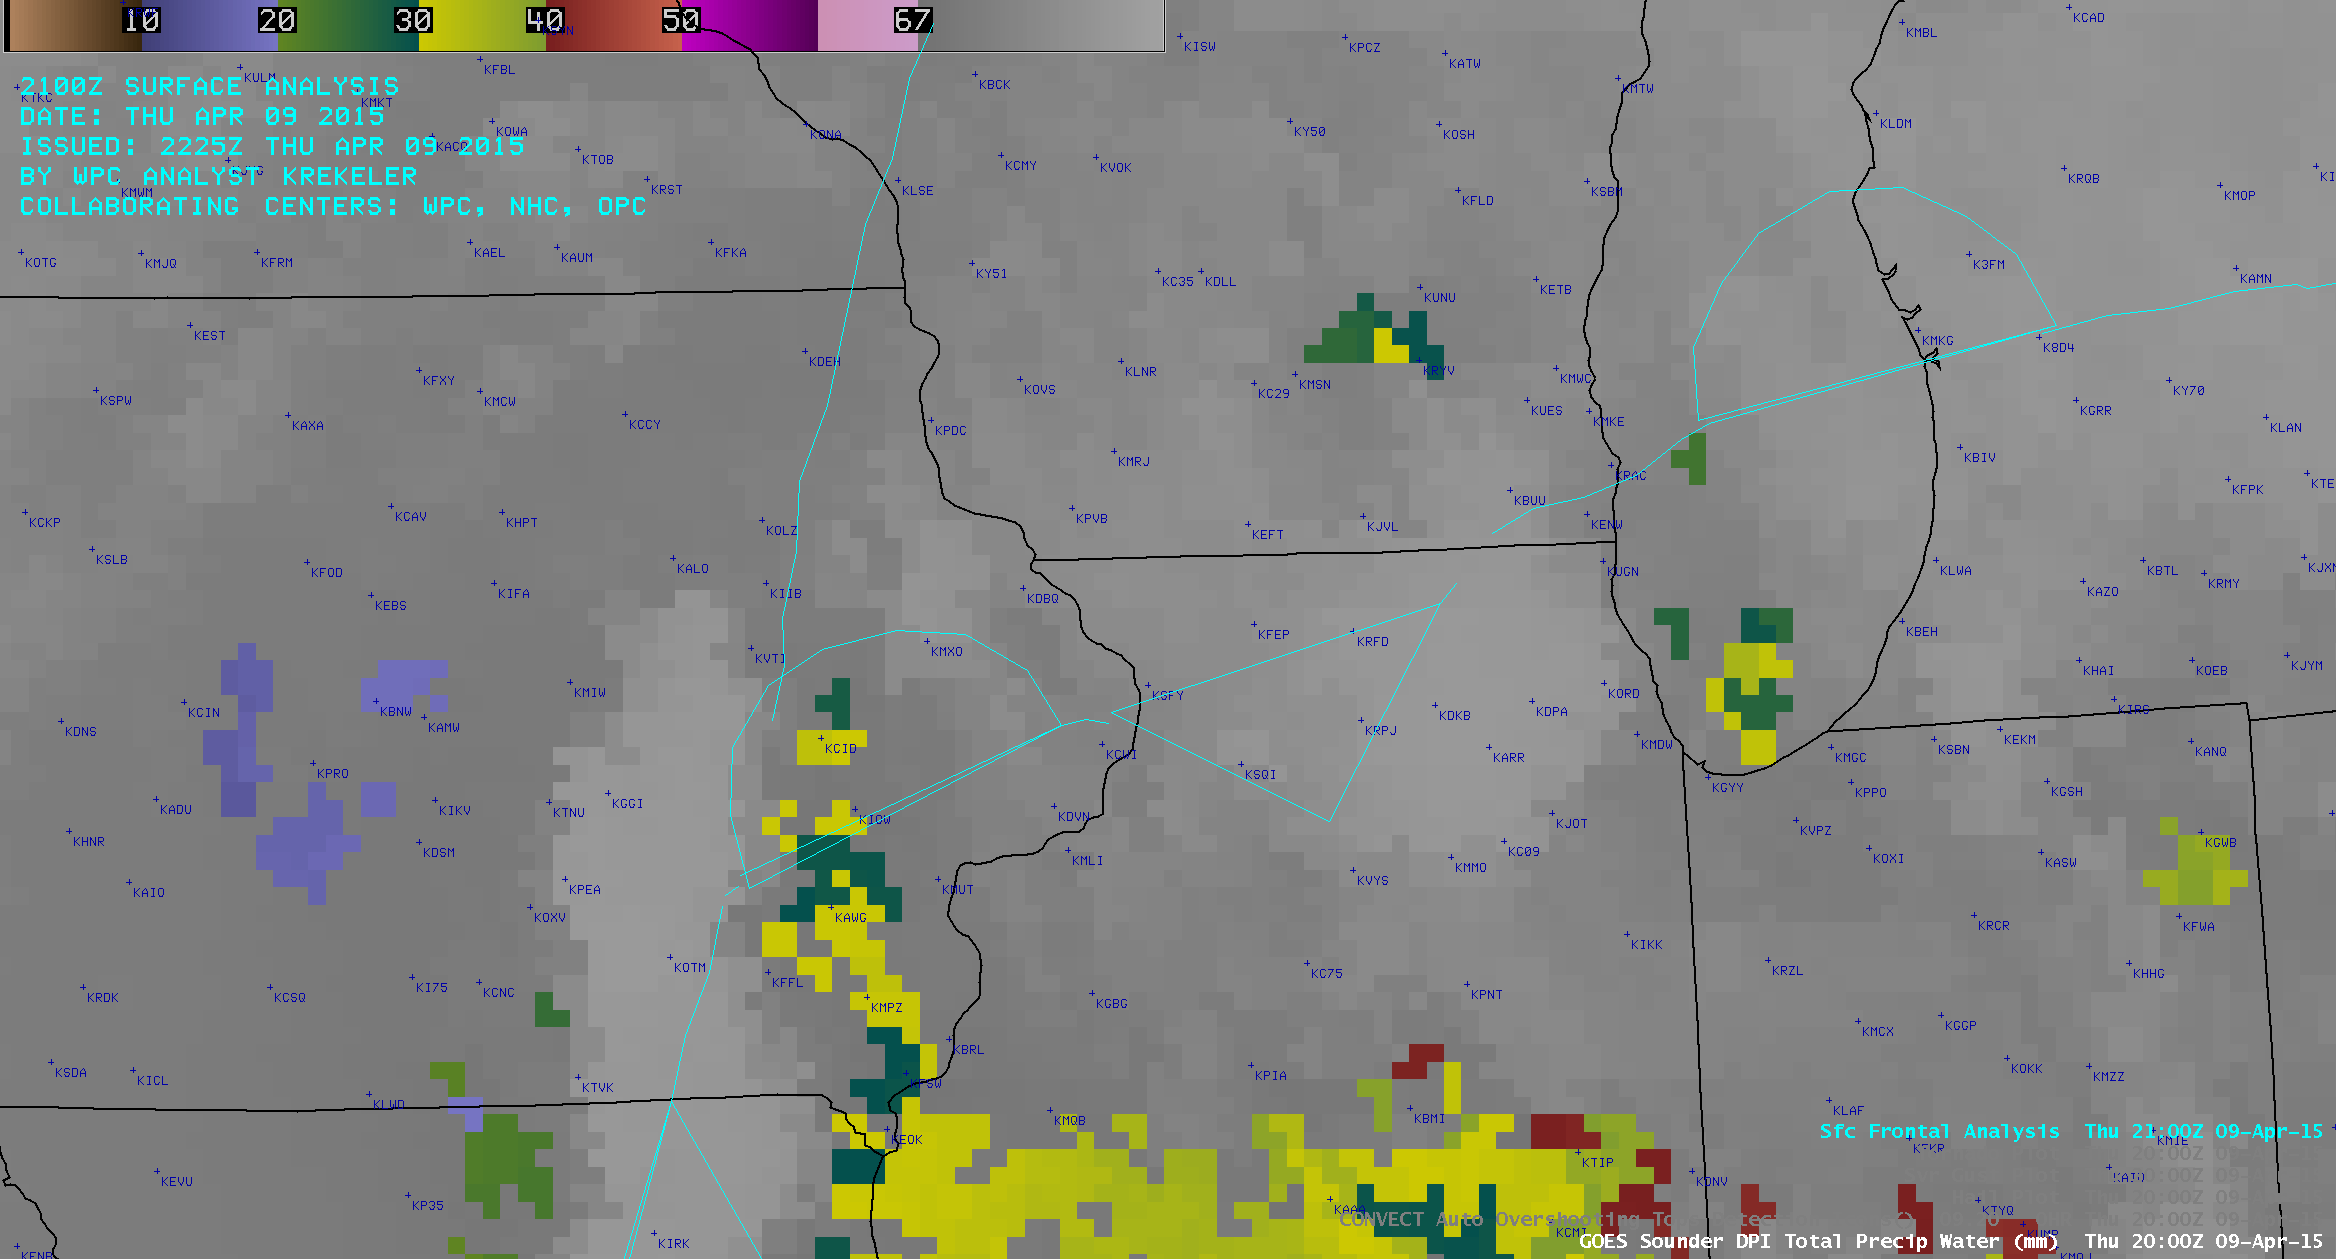 GOES-13 Sounder Total Precipatable Water (TPW) derived product images (click to play animation)